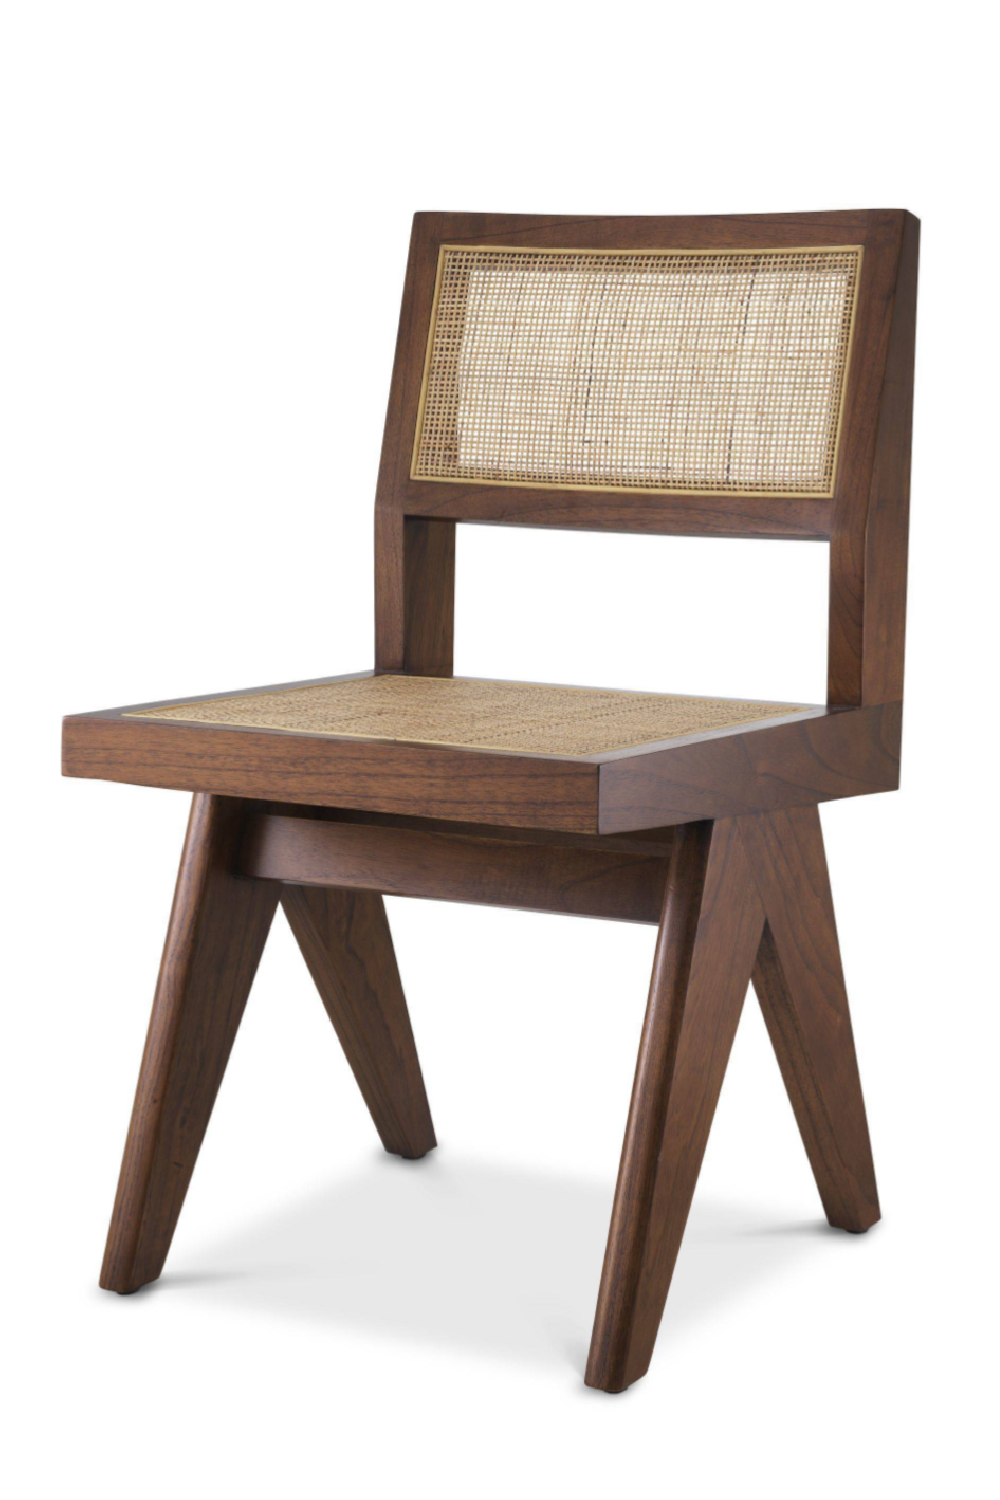 Brown Rattan Cane Dining Chair | Eichholtz Niclas | Woodfurniture.com